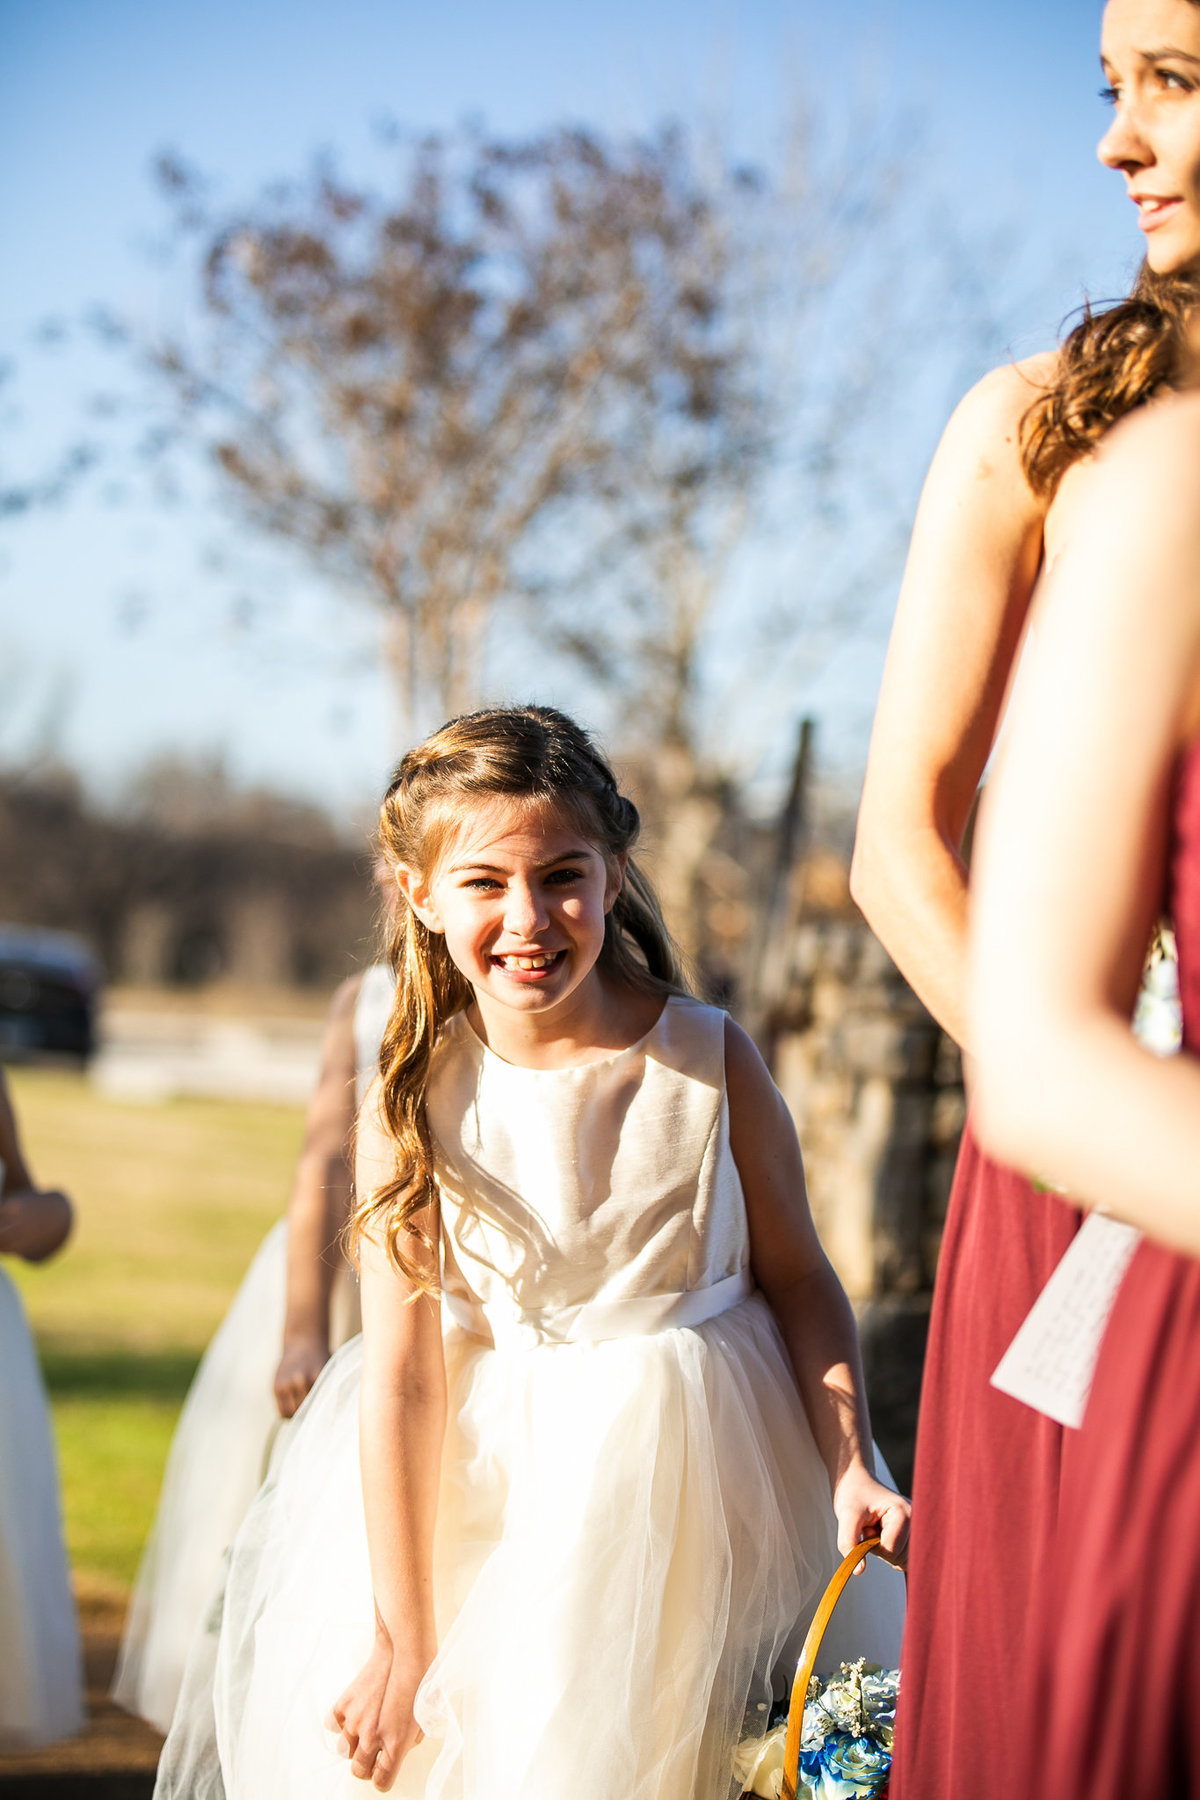 madeline_c_photography_dallas_wedding_photographer_megan_connor-47